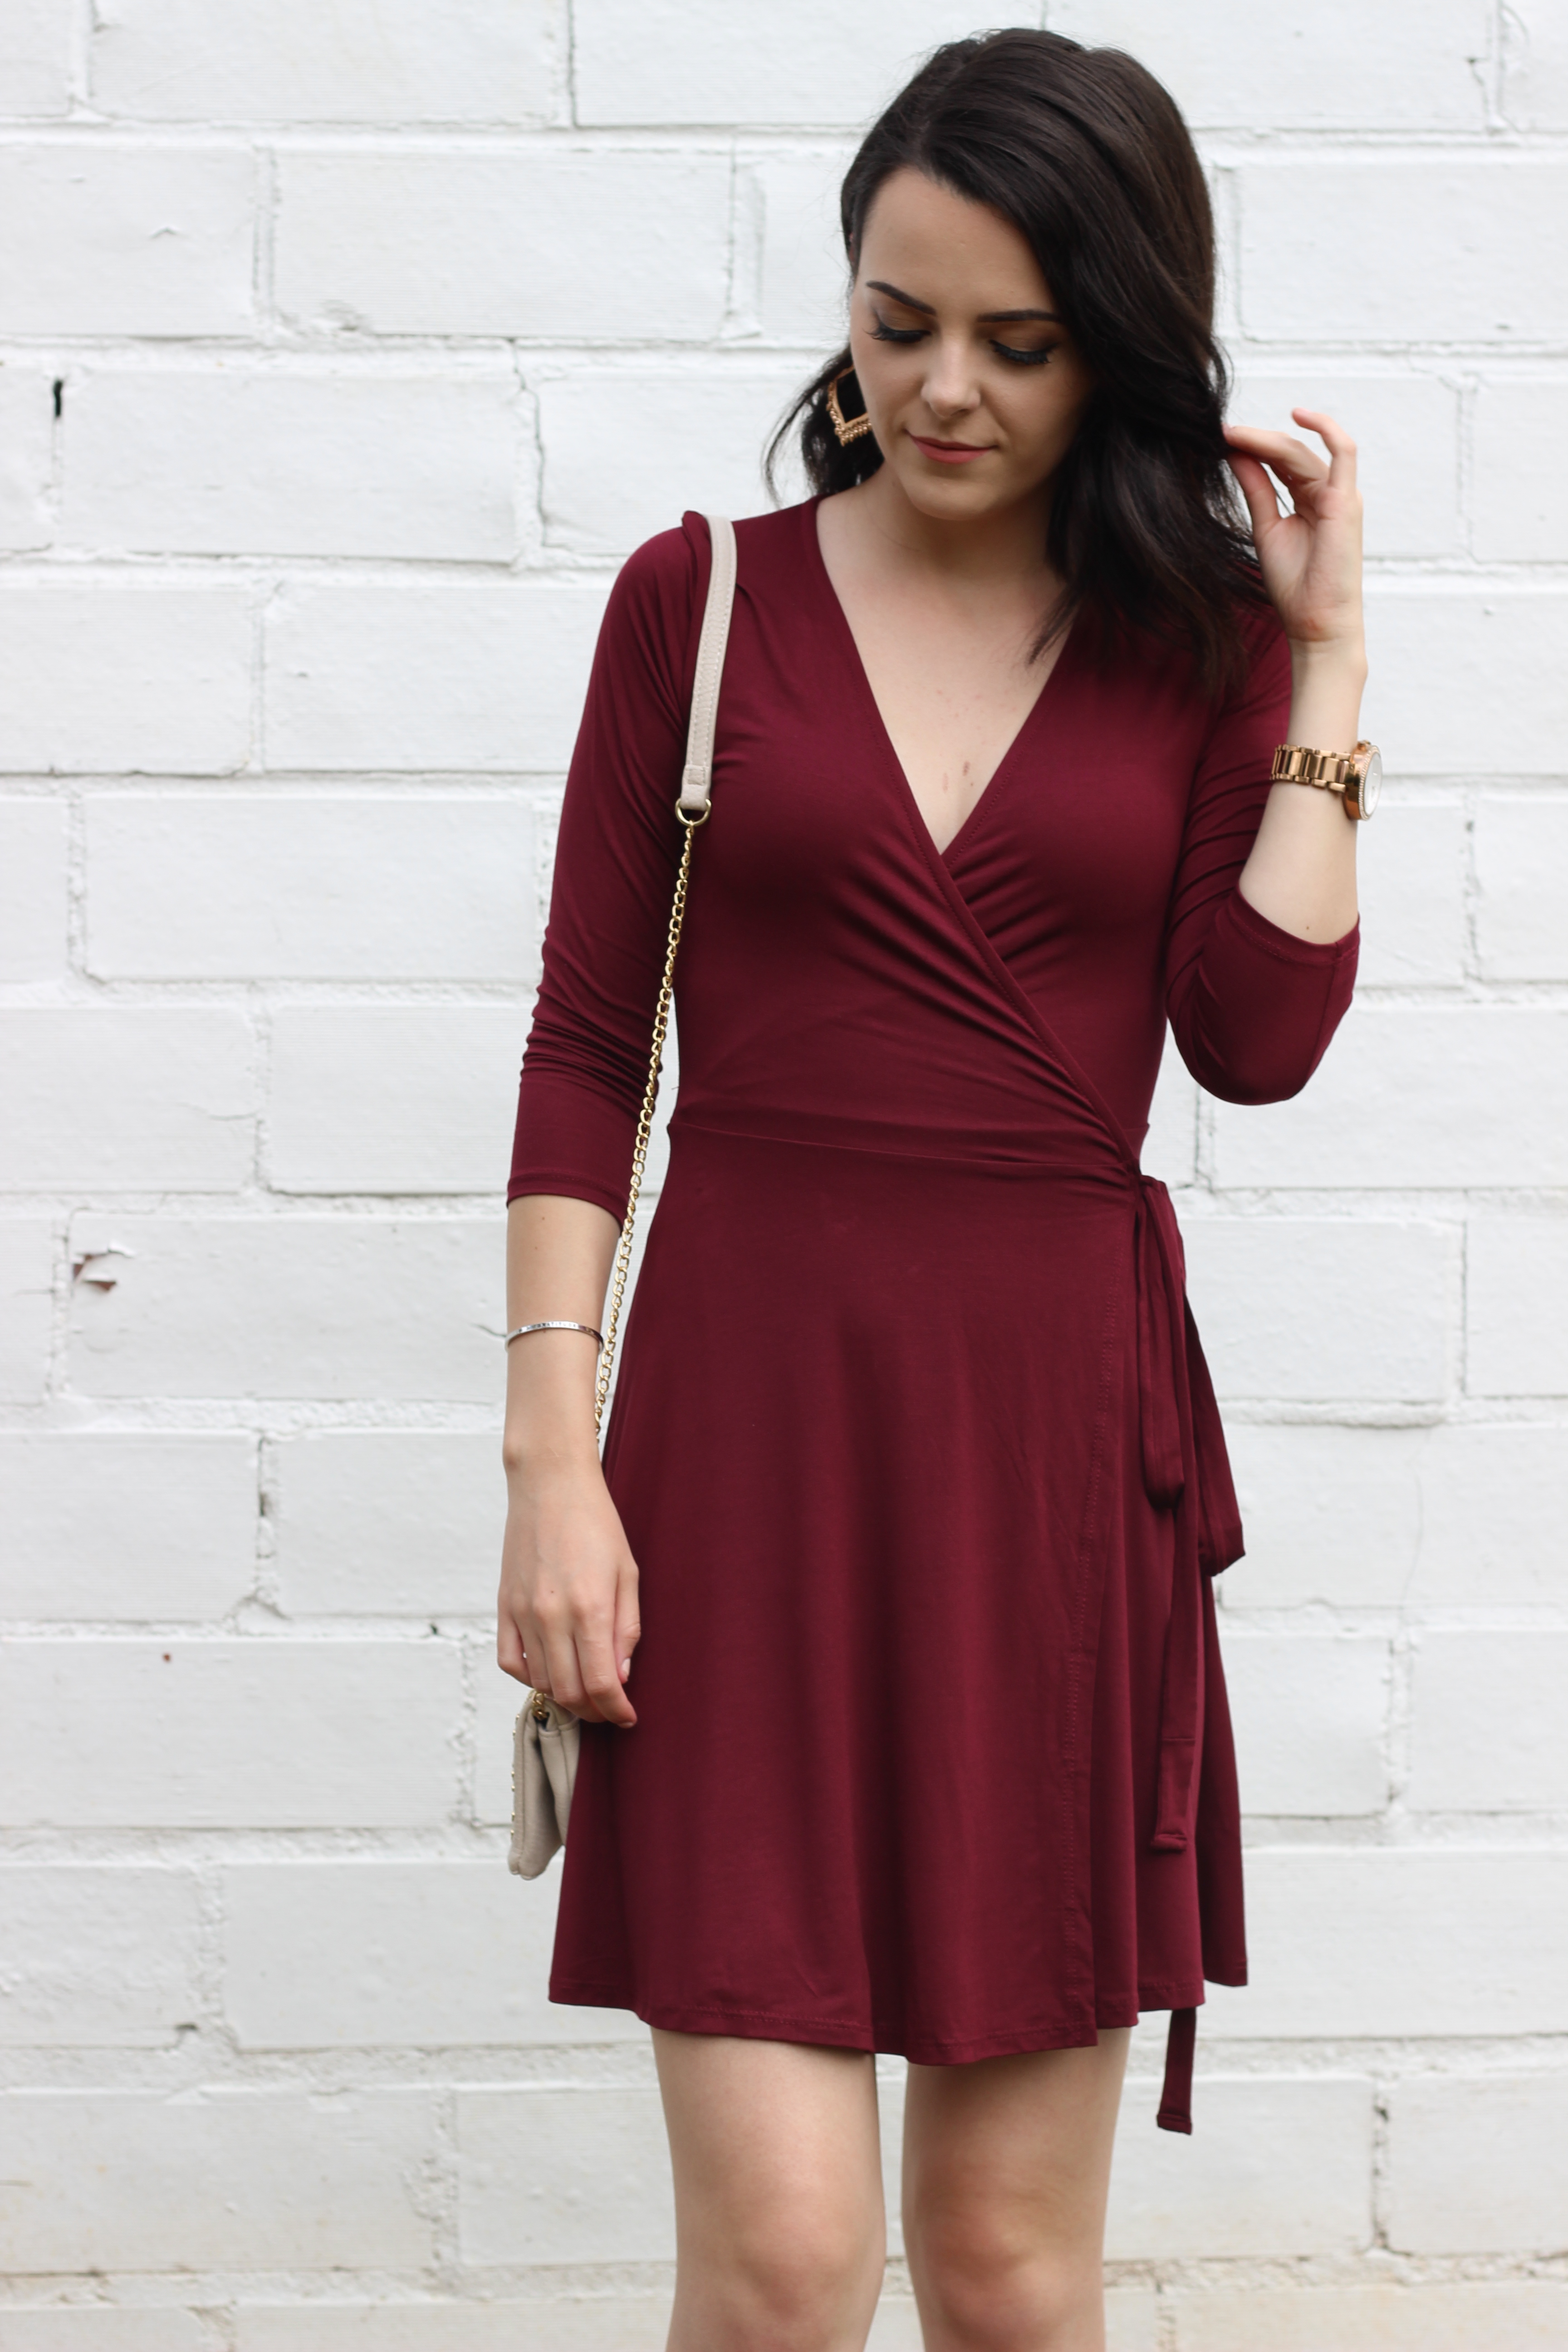 Wrap Dress Wedding Guest Outfit